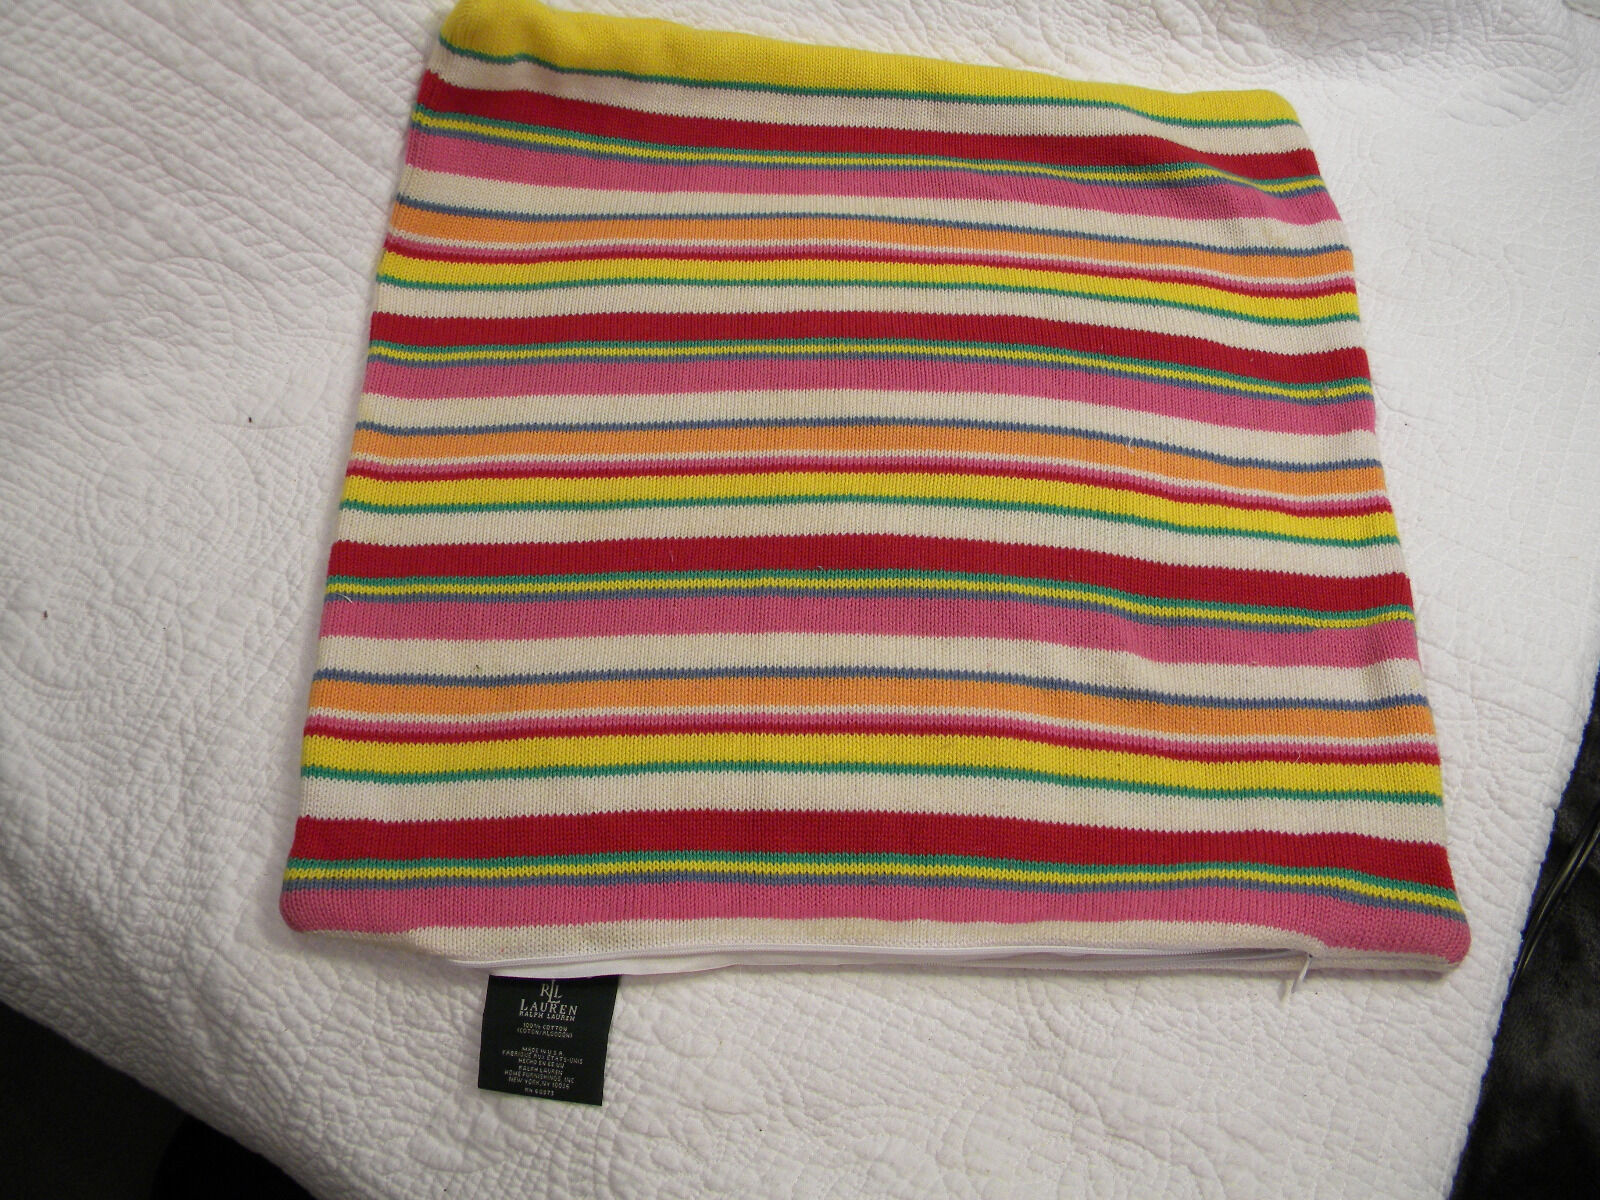 Set of 2Ralph Lauren Knit Multi-colord Striped Square Pillow Covers 100% Cotton